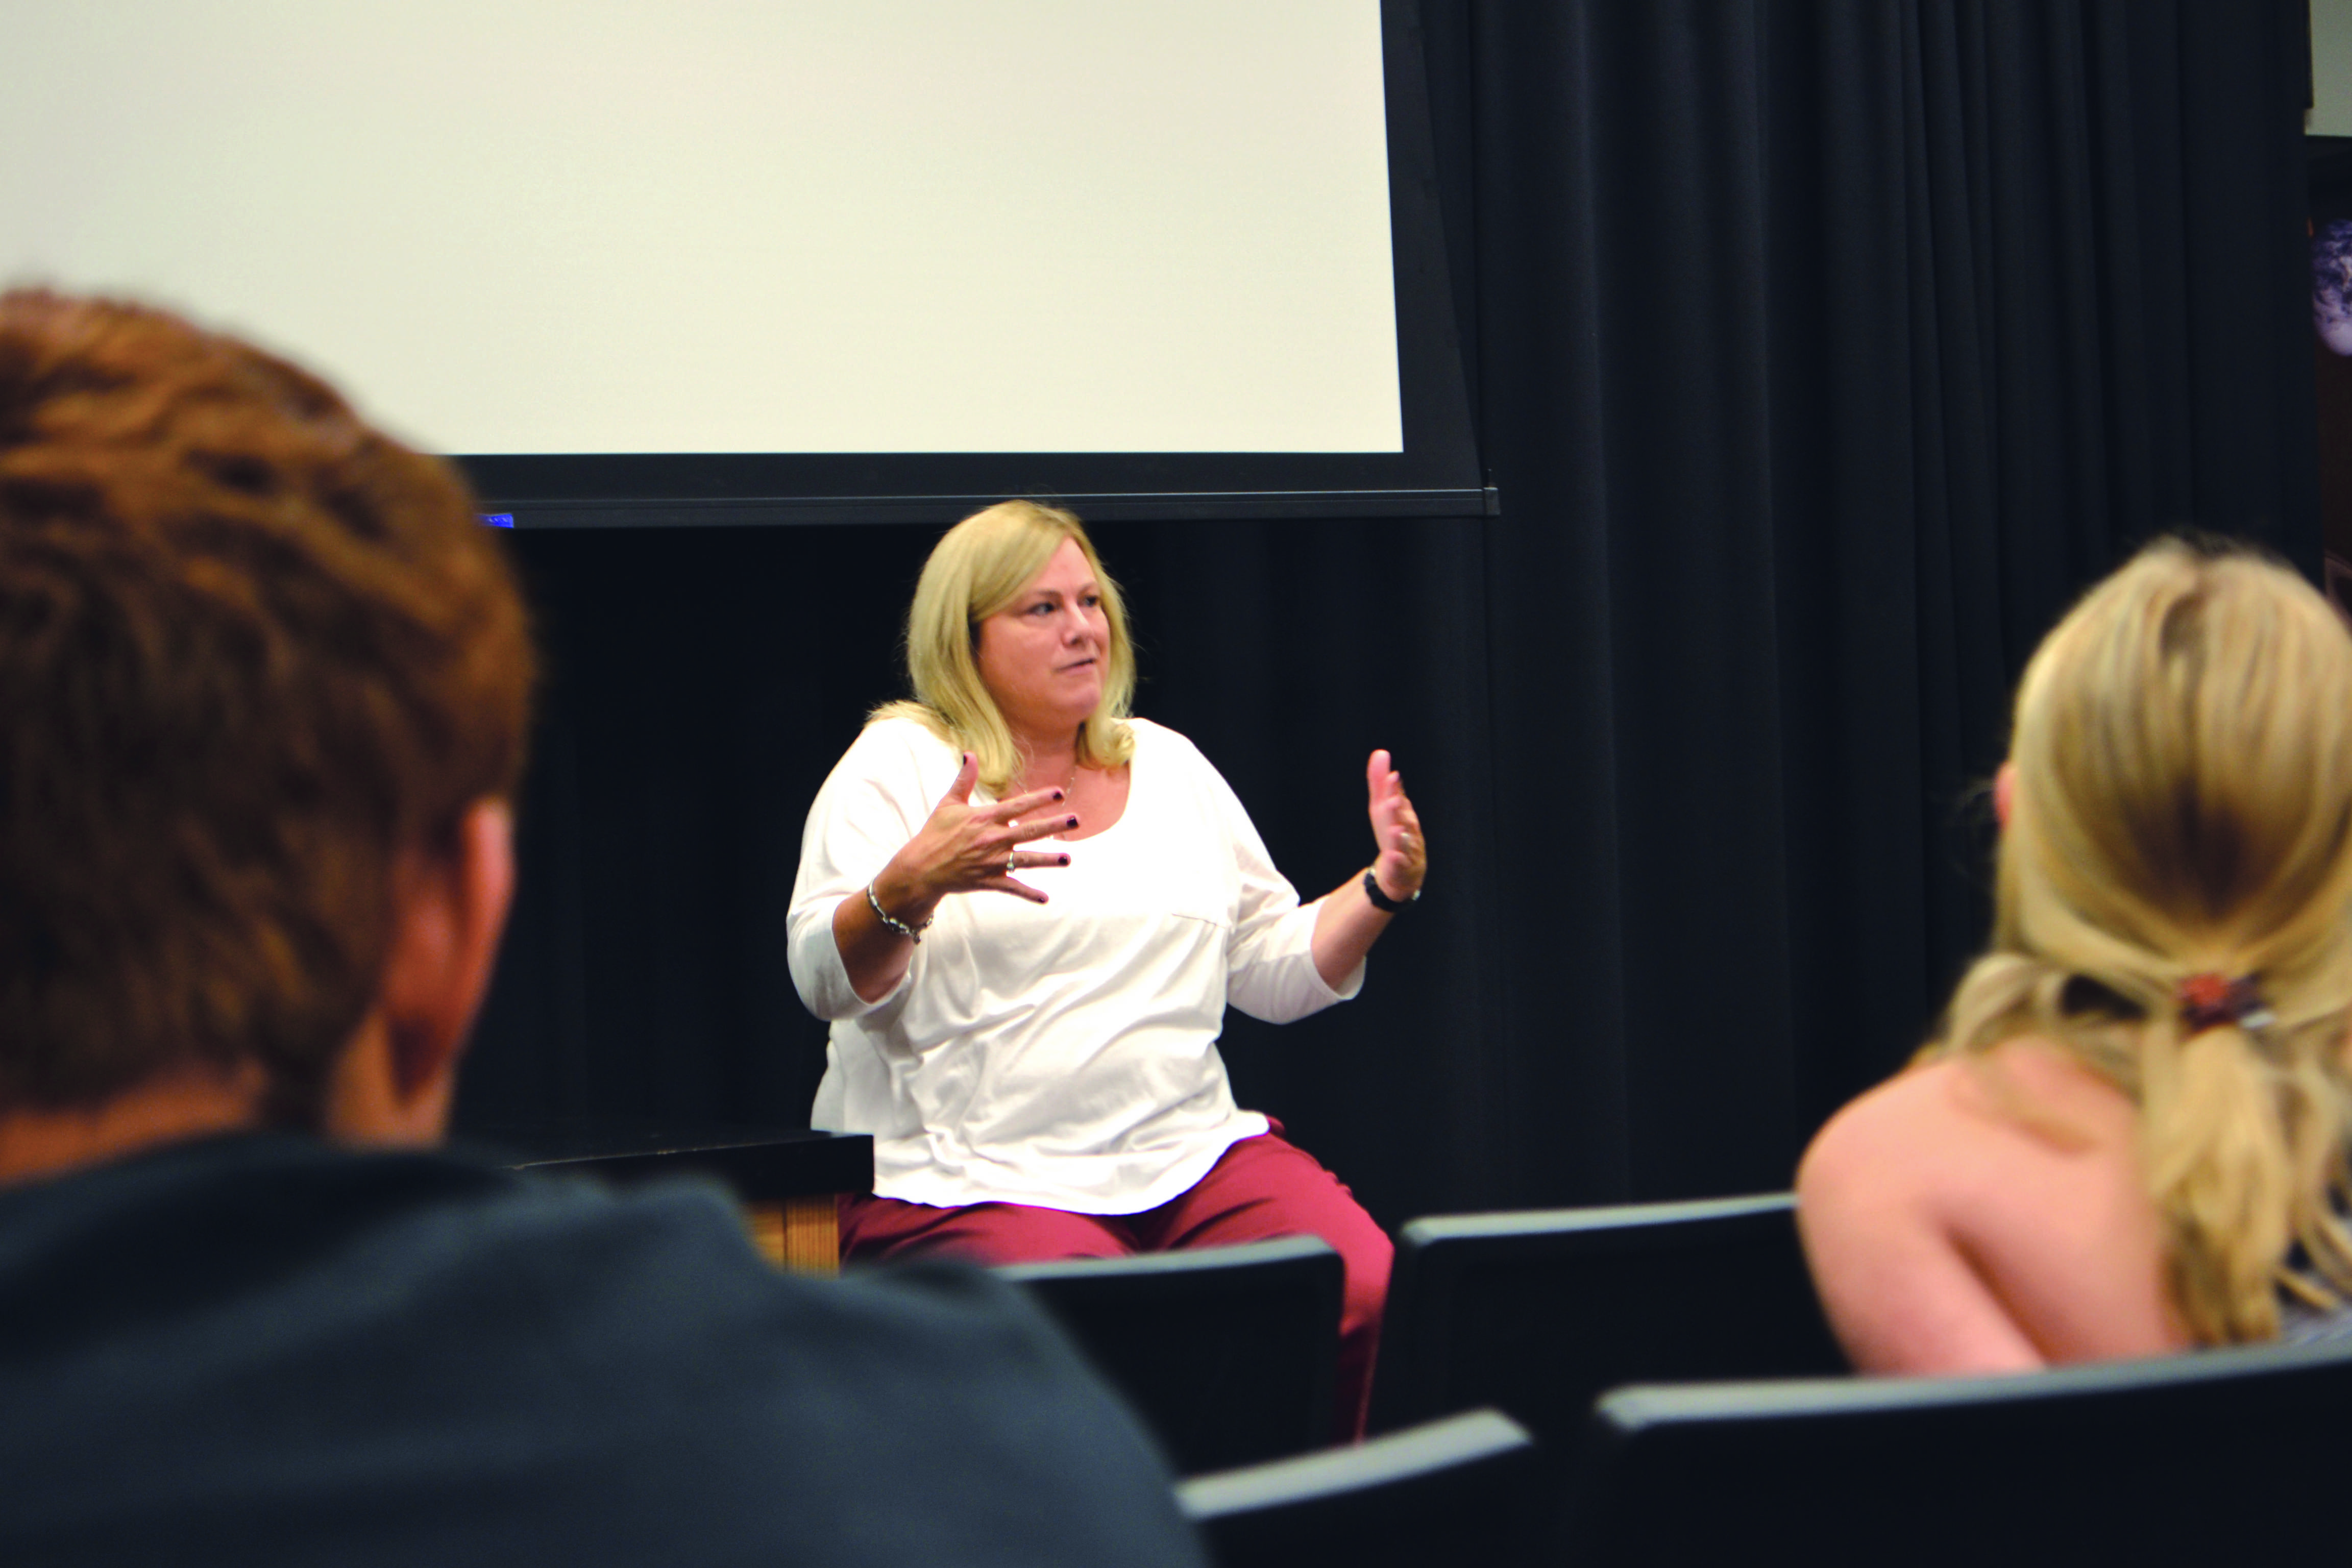 Assistant to the Head of Upper School Michele Bracken leads the follow up discussion in Ahmanson during Activities Nov. 7. Faculty and students discussed miscroaggressions brought up by the video and brainstormed solutions for the school. Credit: Nicole Kim/Chronicle